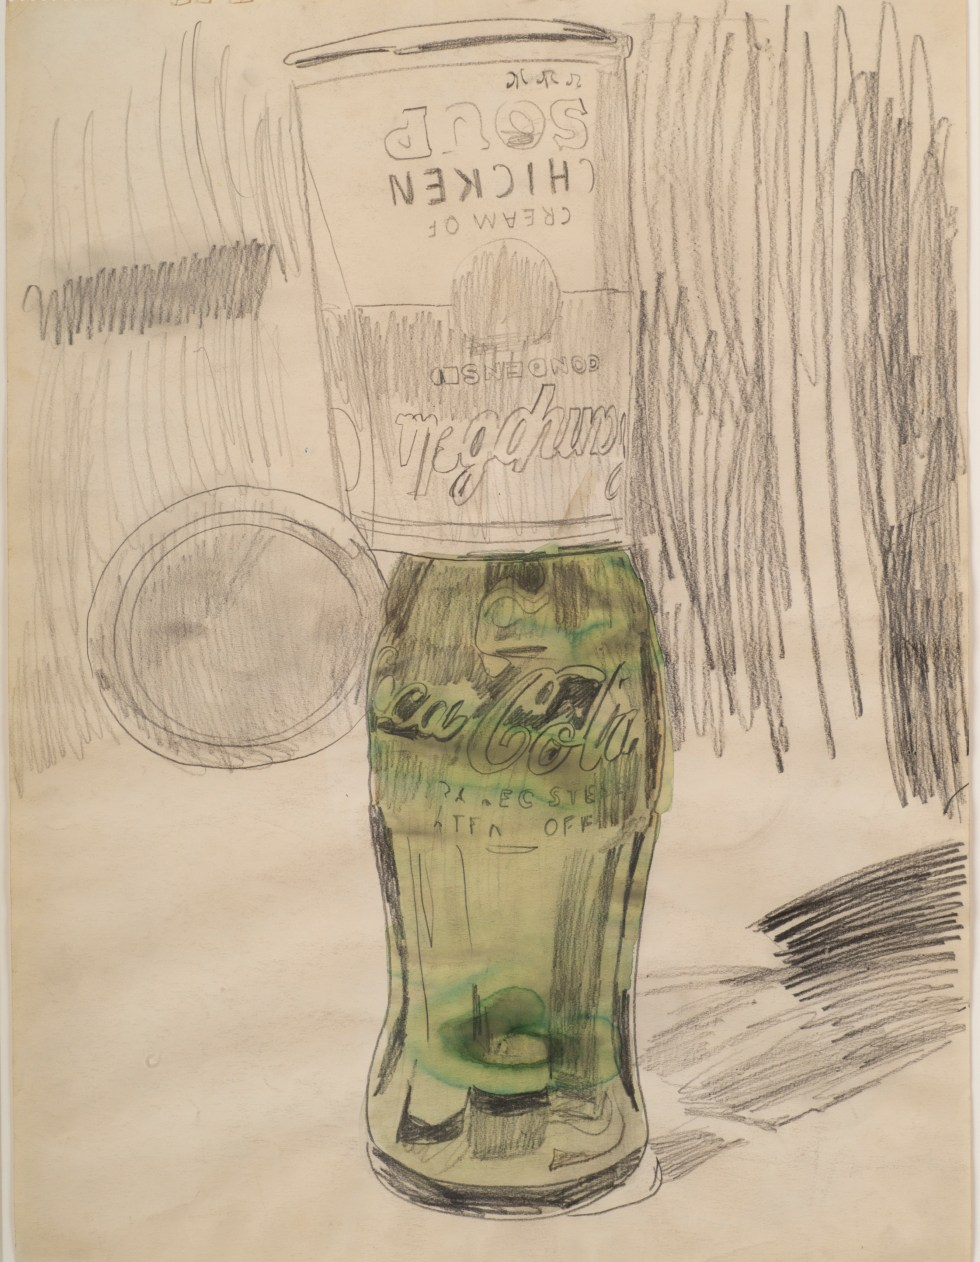 Andy Warhol (1928–1987), Campbell's Soup Can over Coke Bottle, 1962. Graphite and watercolor on paper, 23 1⁄2 × 17 3⁄4 in. (59.7 × 45.1 cm). The Brant Foundation, Greenwich, CT © The Andy Warhol Foundation for the Visual Arts, Inc. / Artists Rights Society (ARS) New York